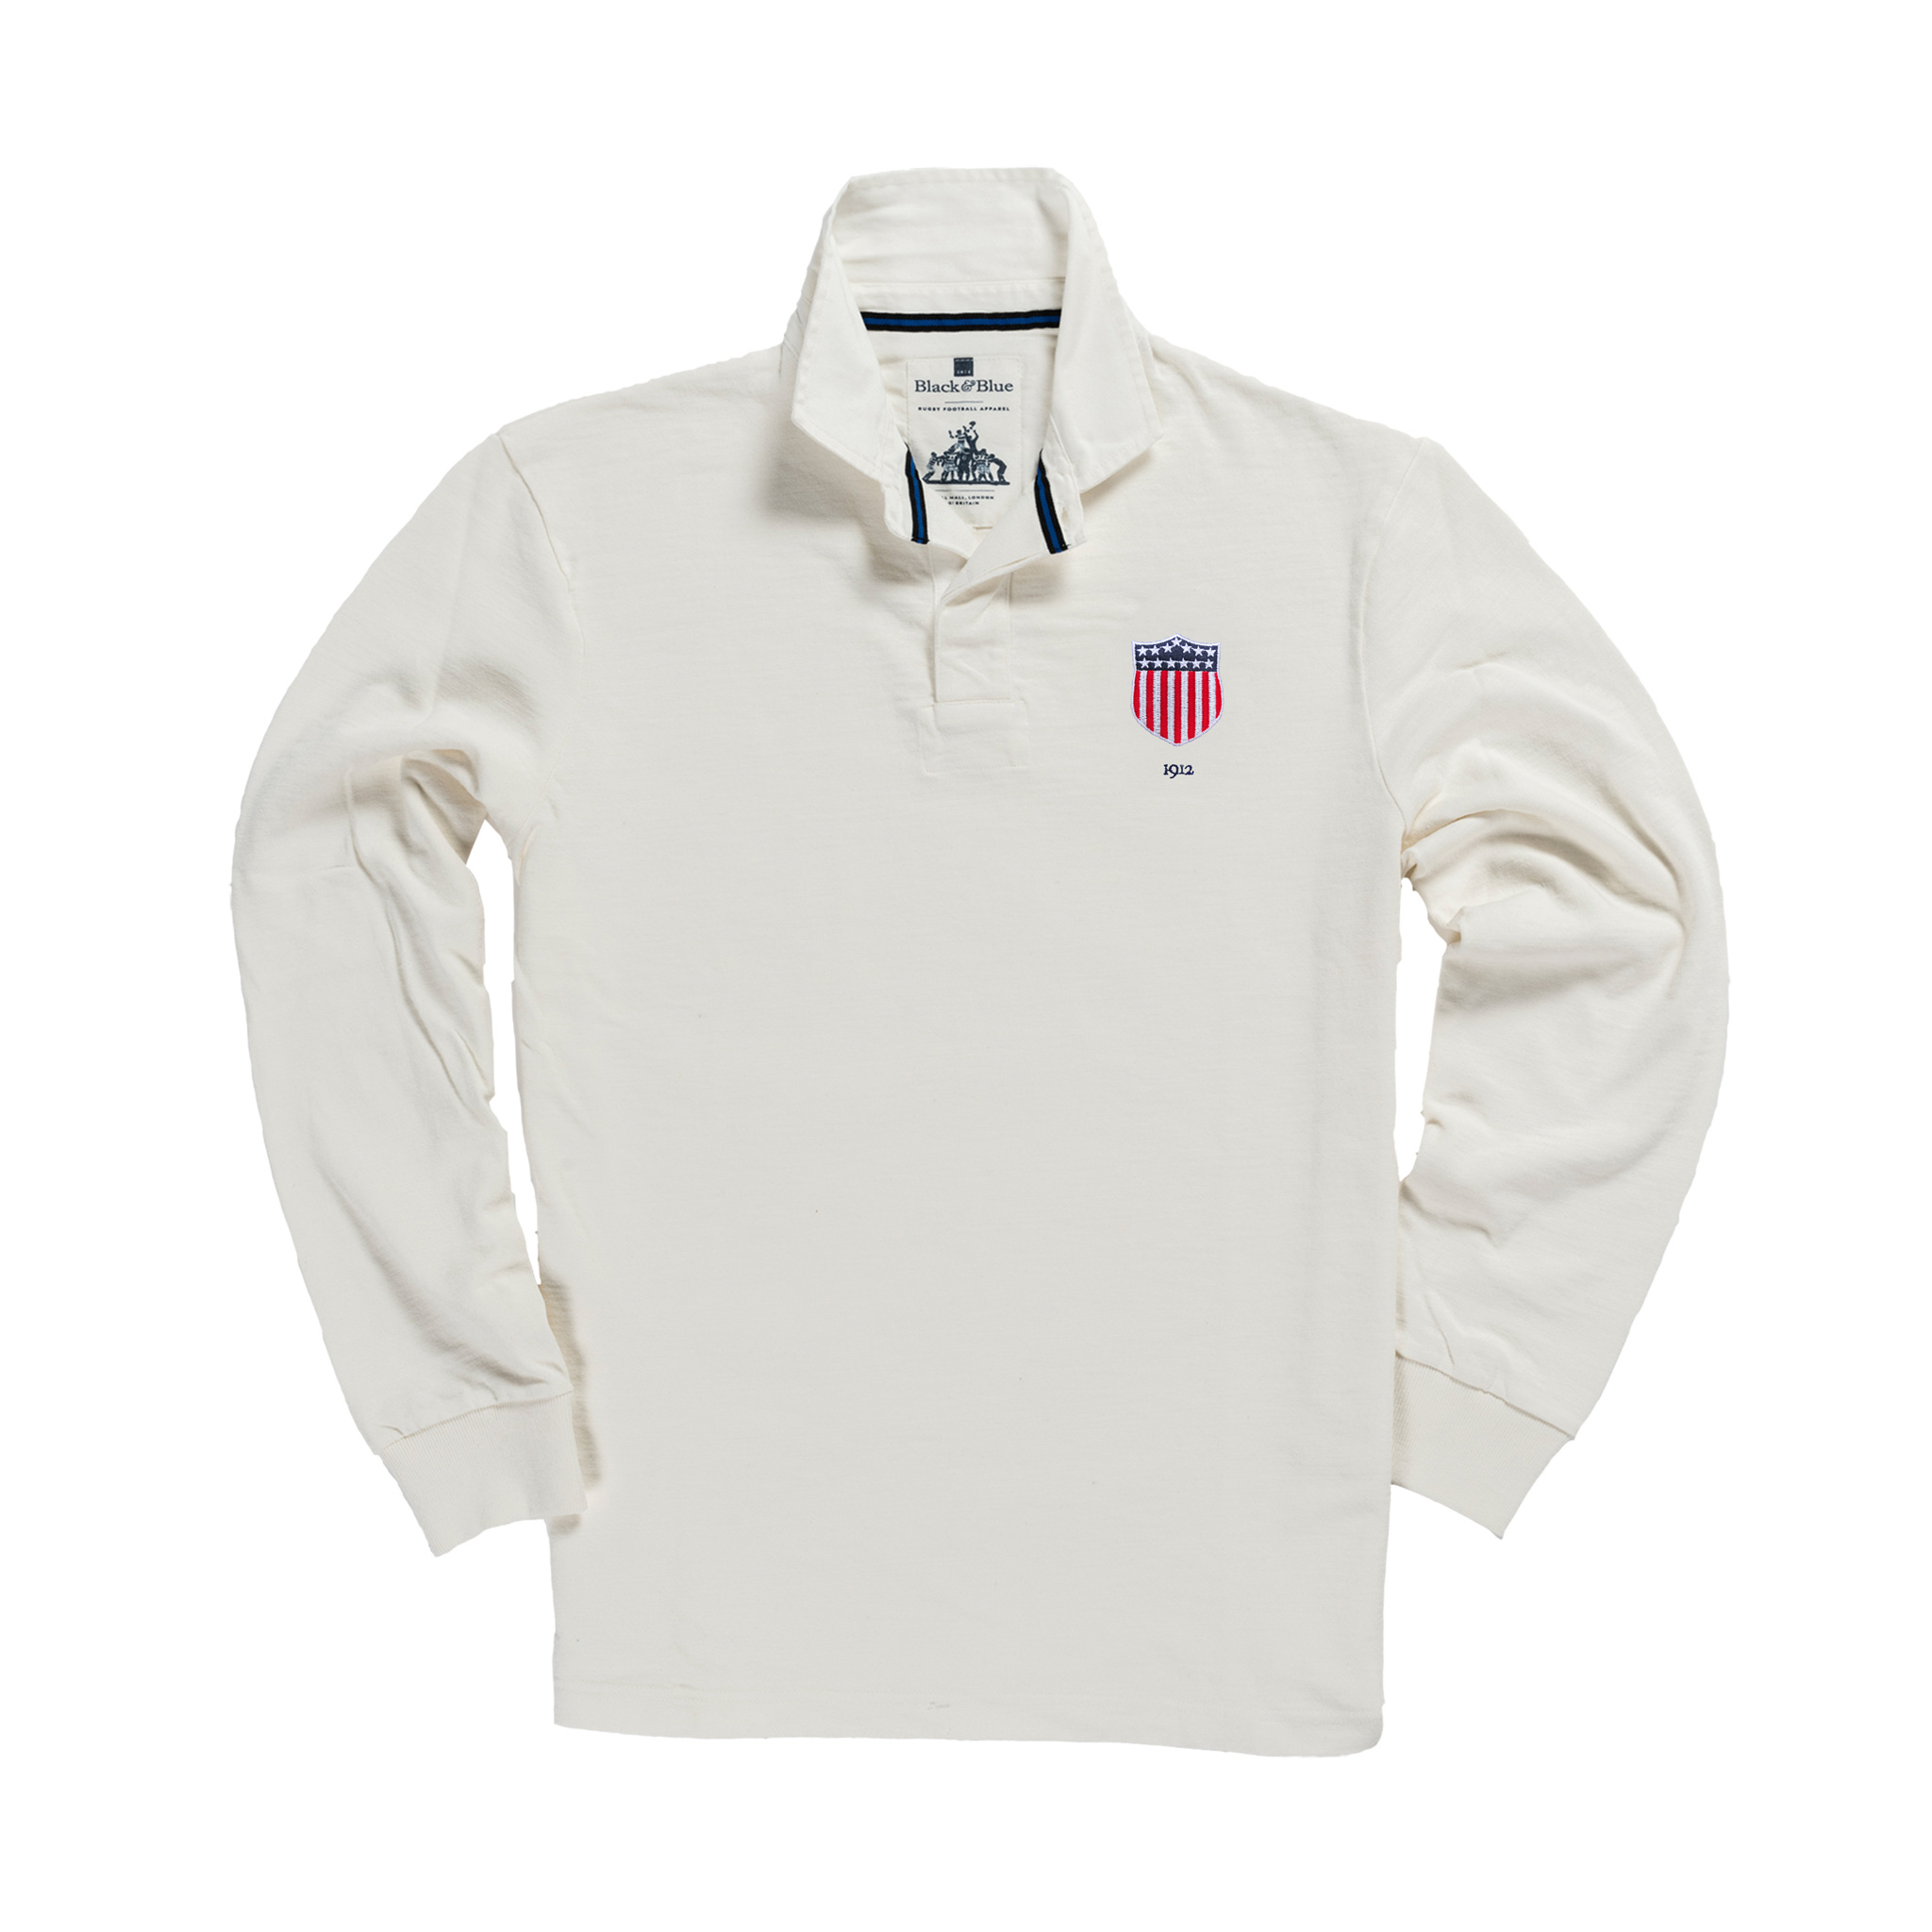 USA 1912 Vintage Rugby Shirt